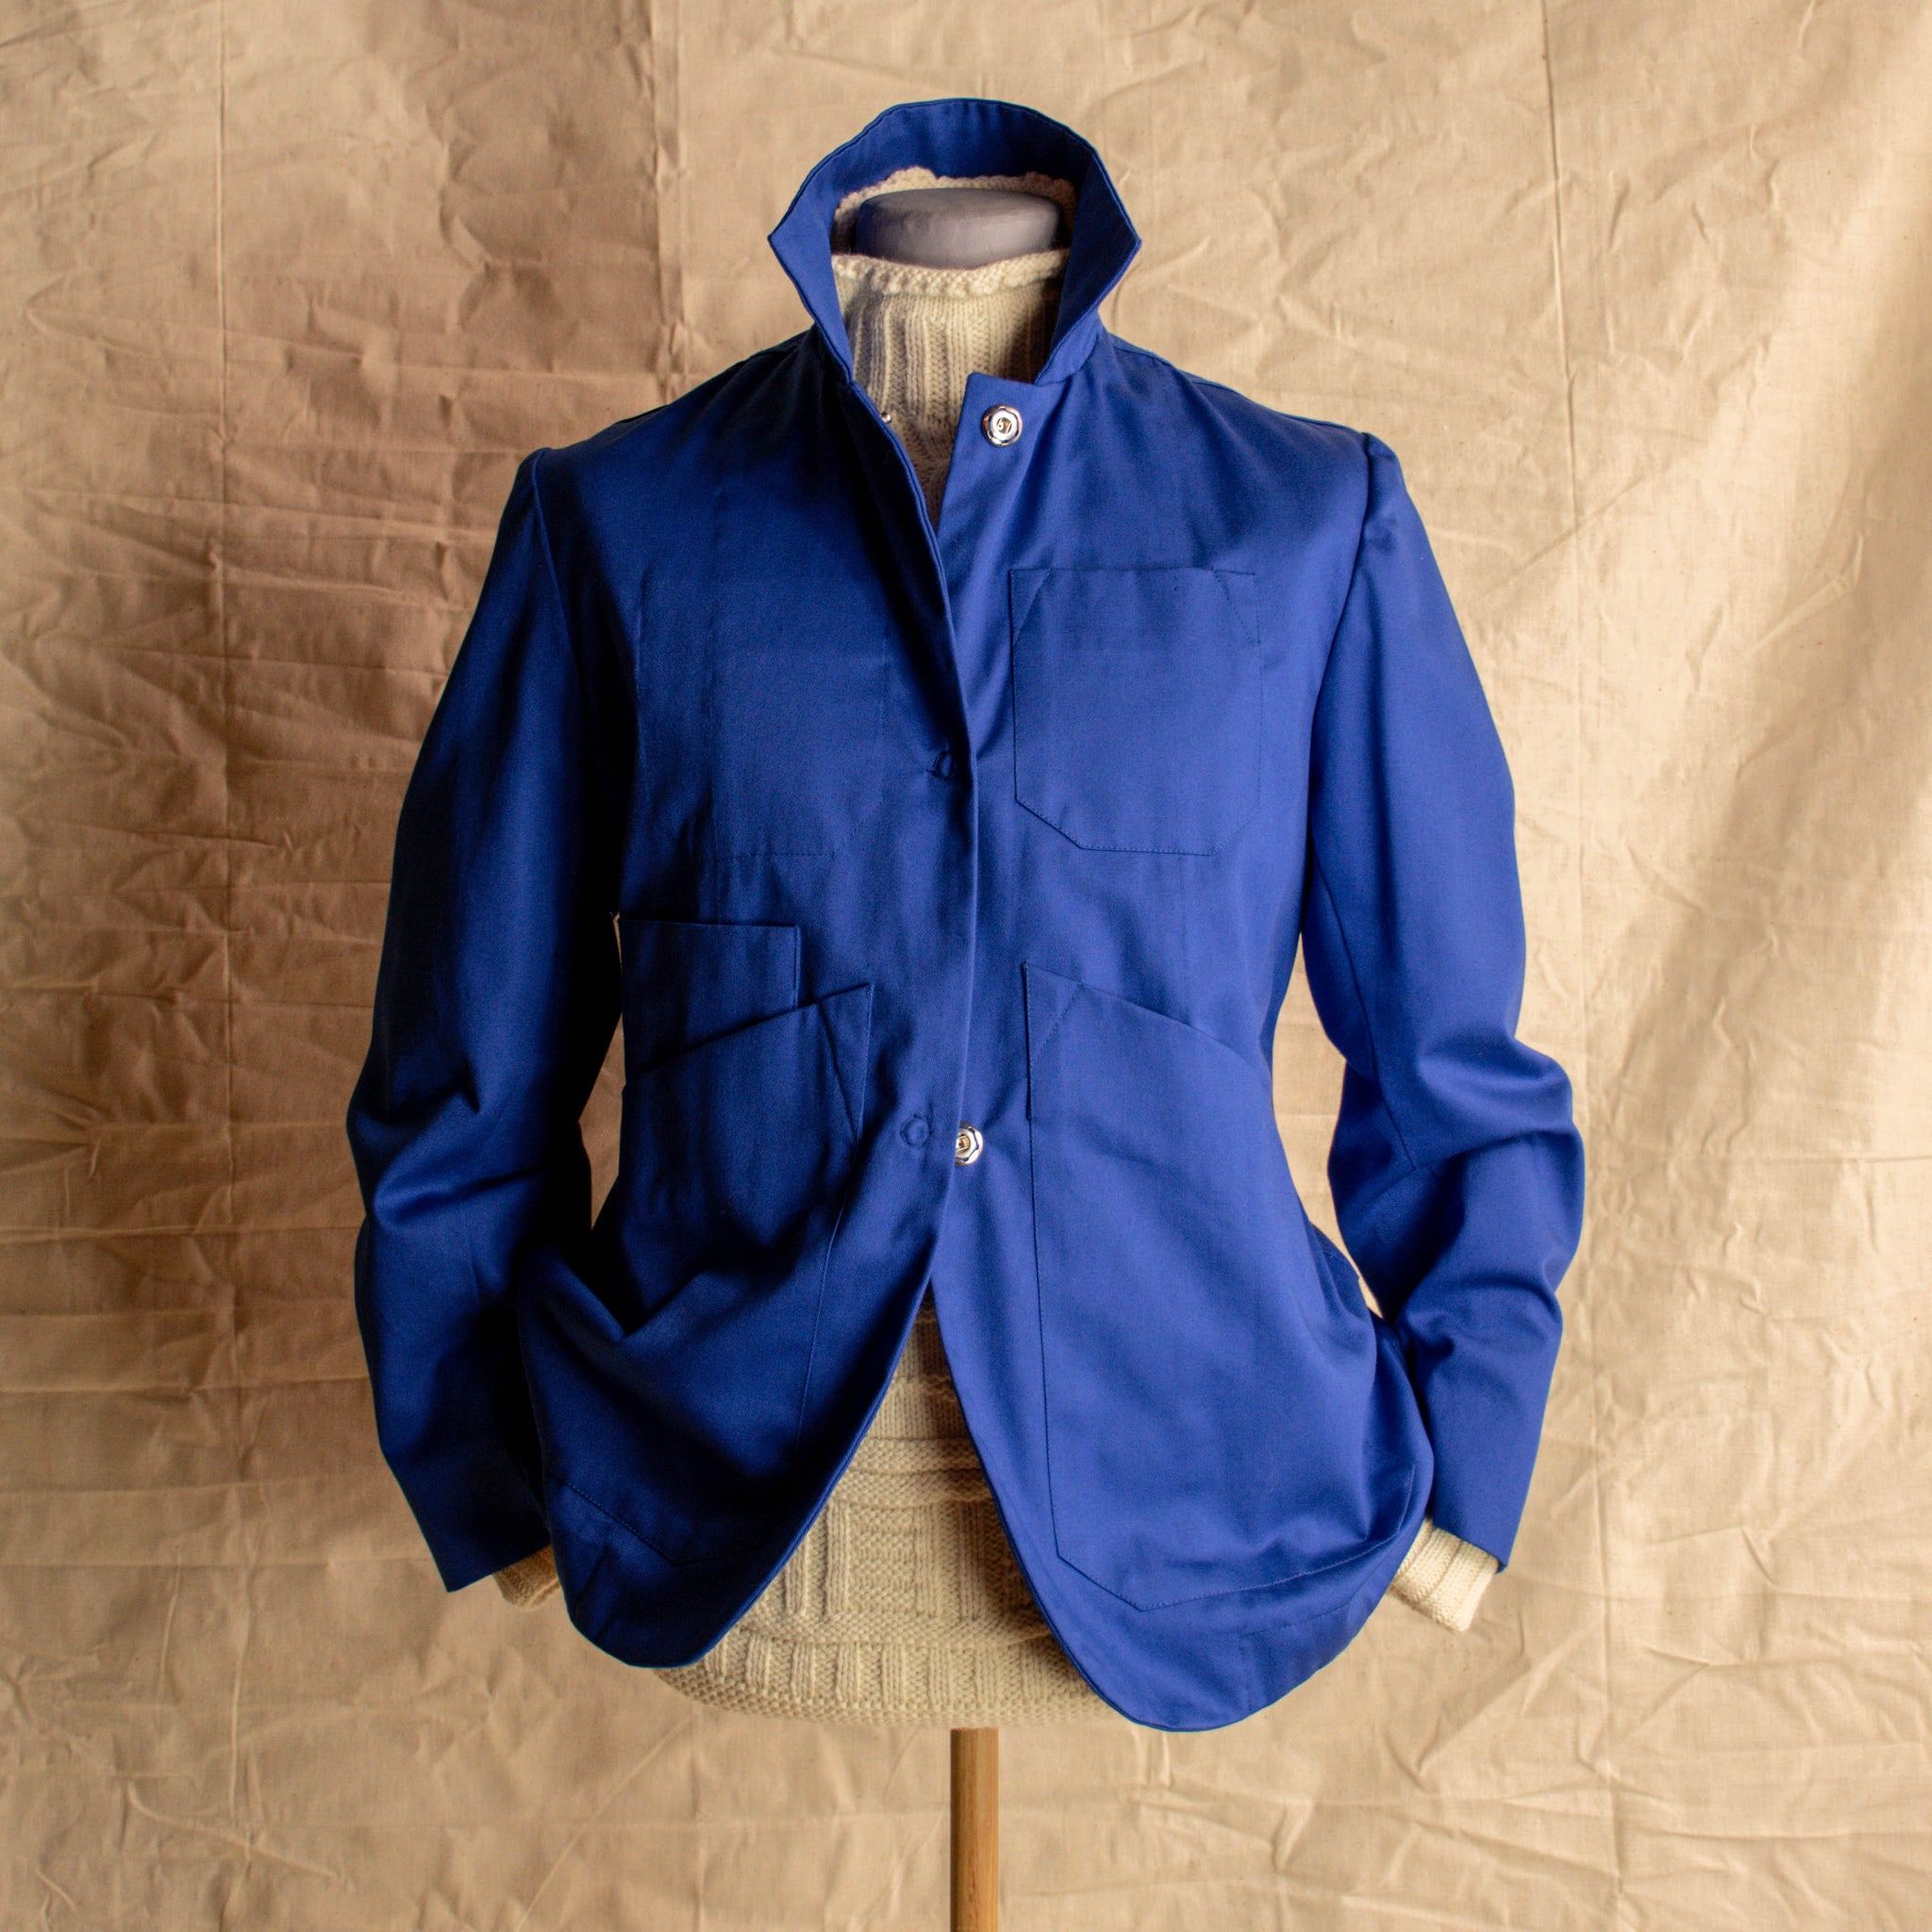 HICK Hastings Workwear Jacket